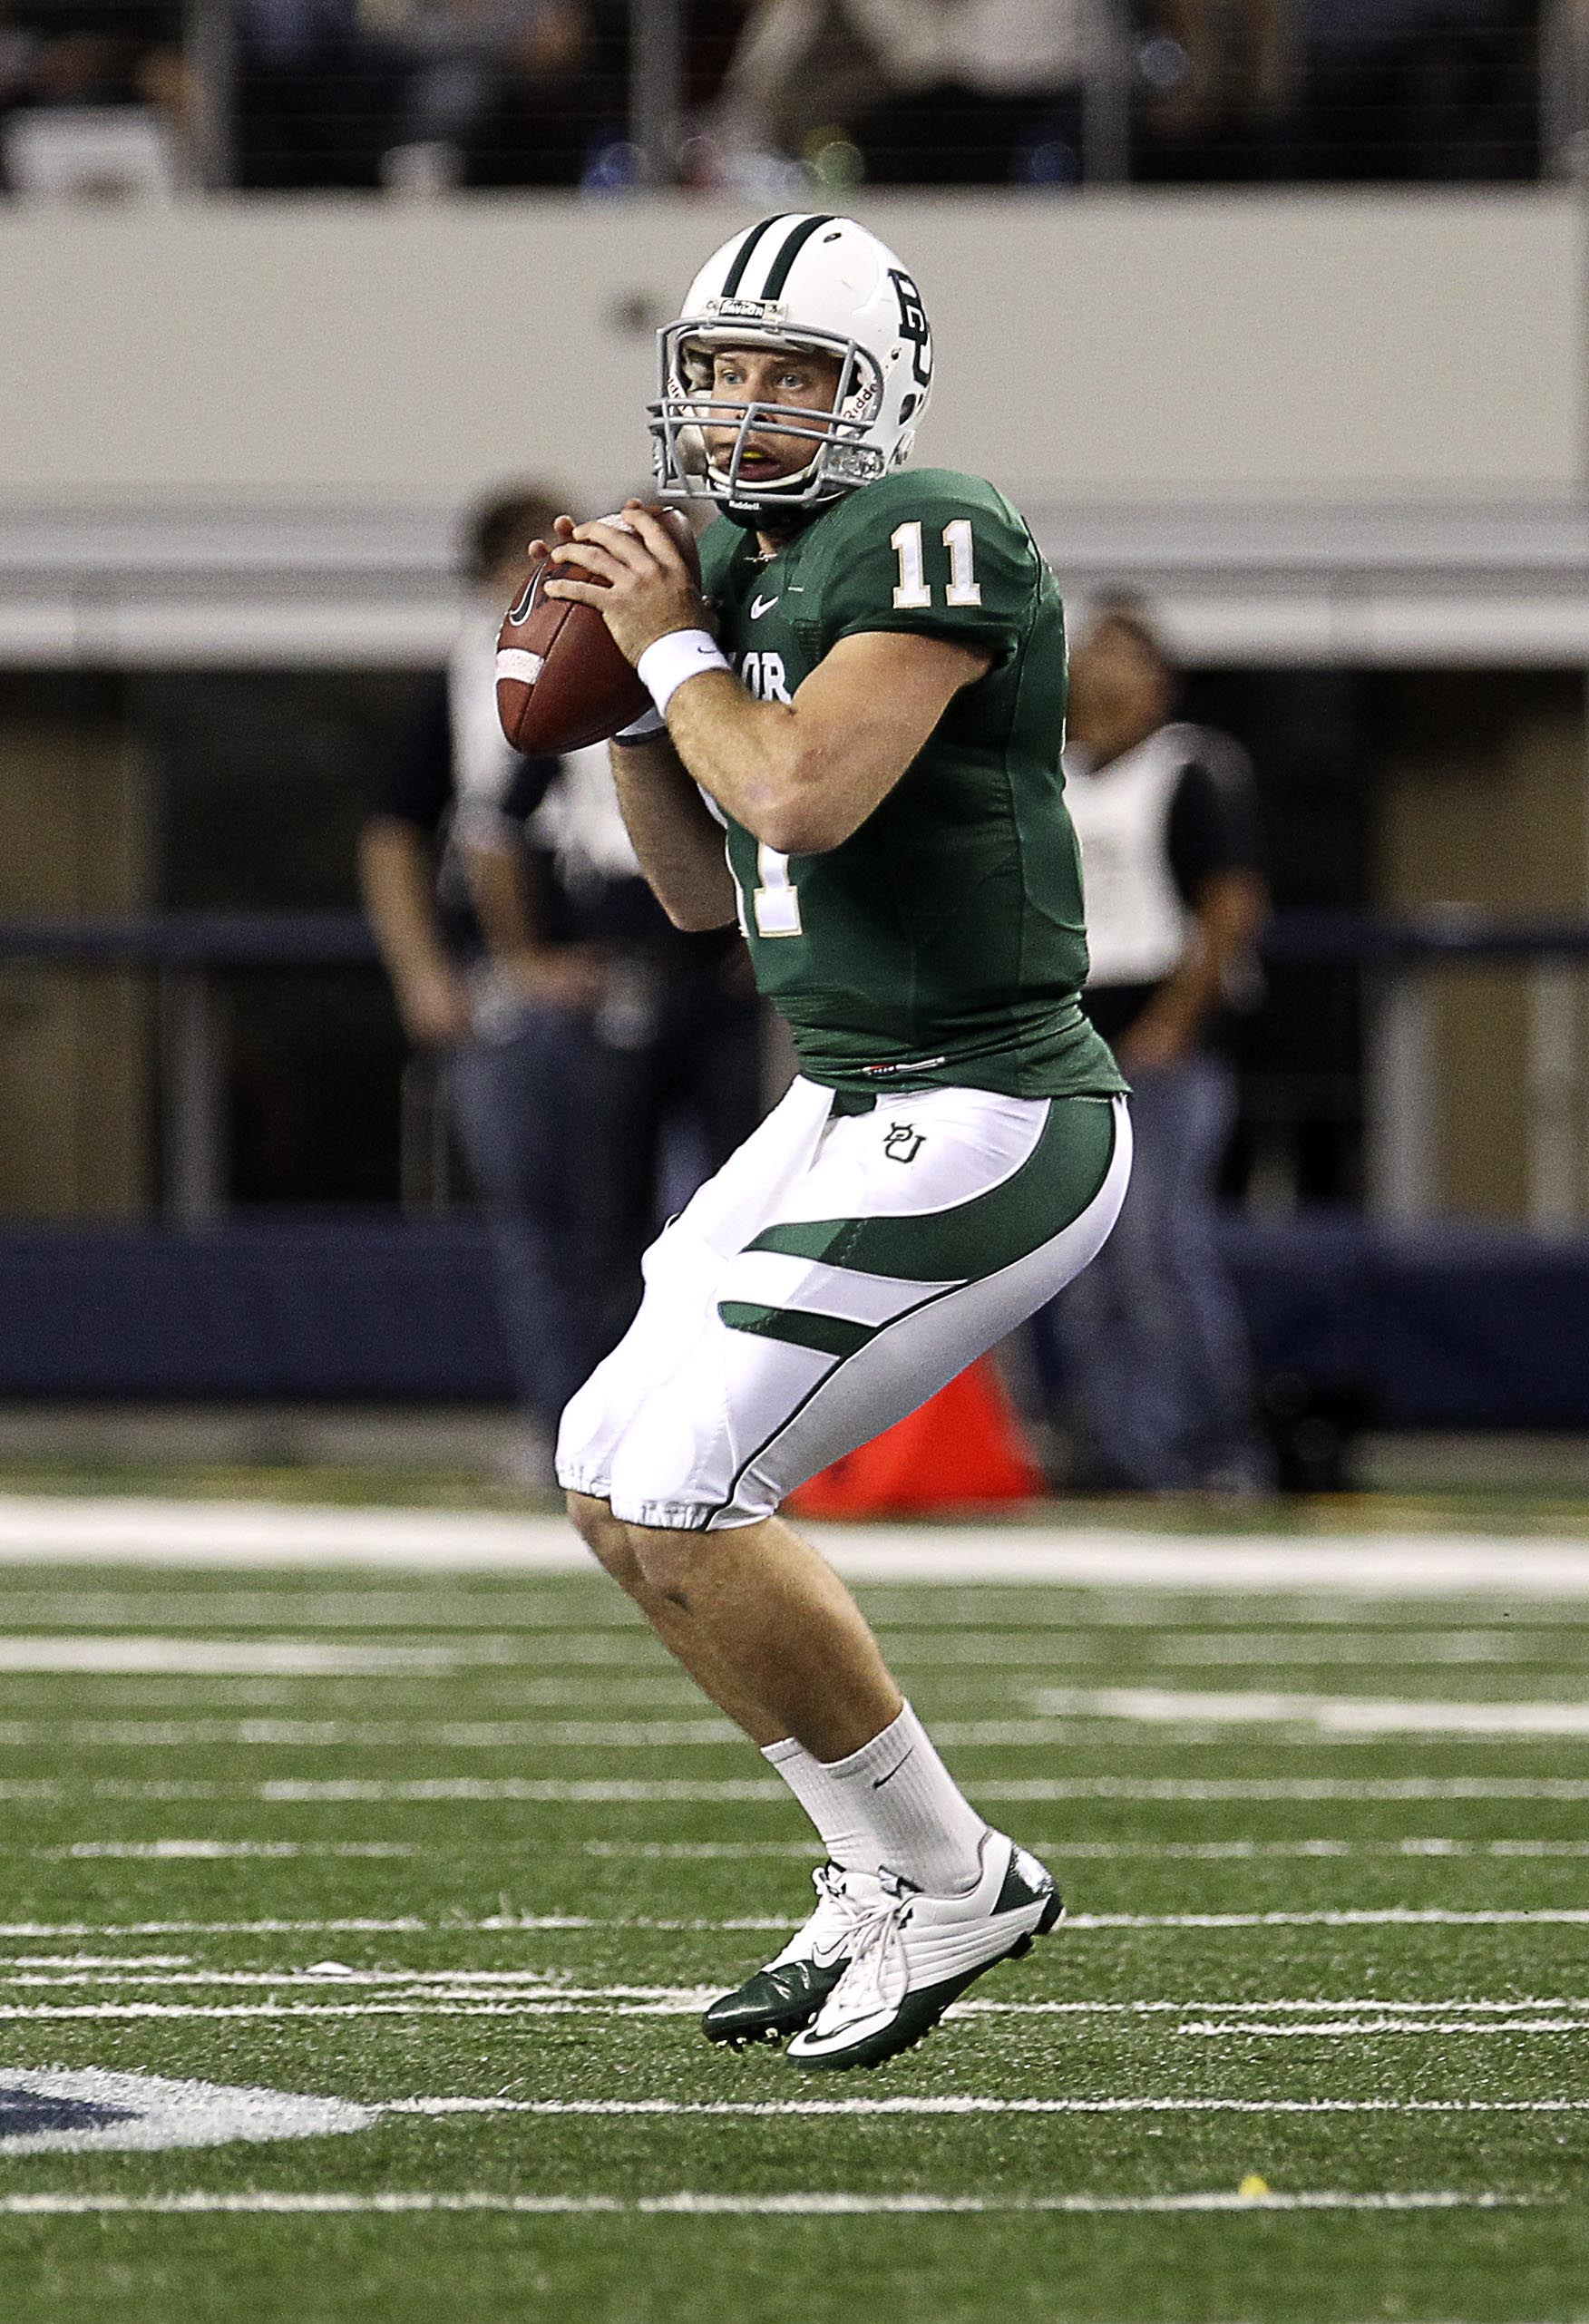 Florence was pressed into action as a freshman in 2009 and played relatively well. (Baylor)